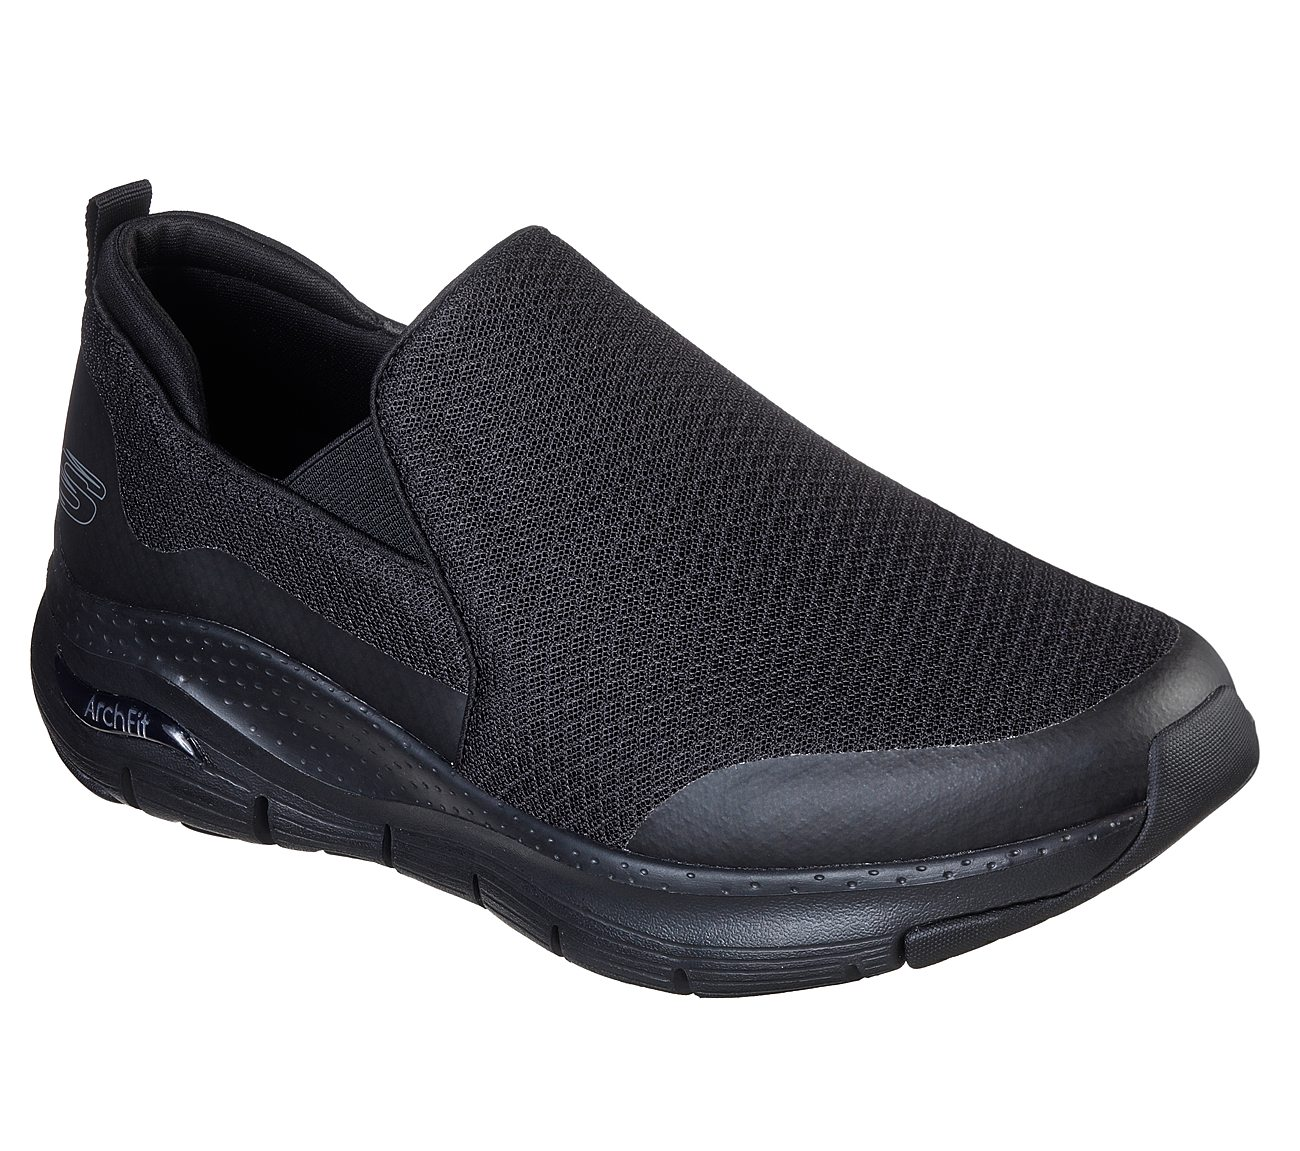 Banlin EXTRA WIDE FIT Skechers Arch Fit